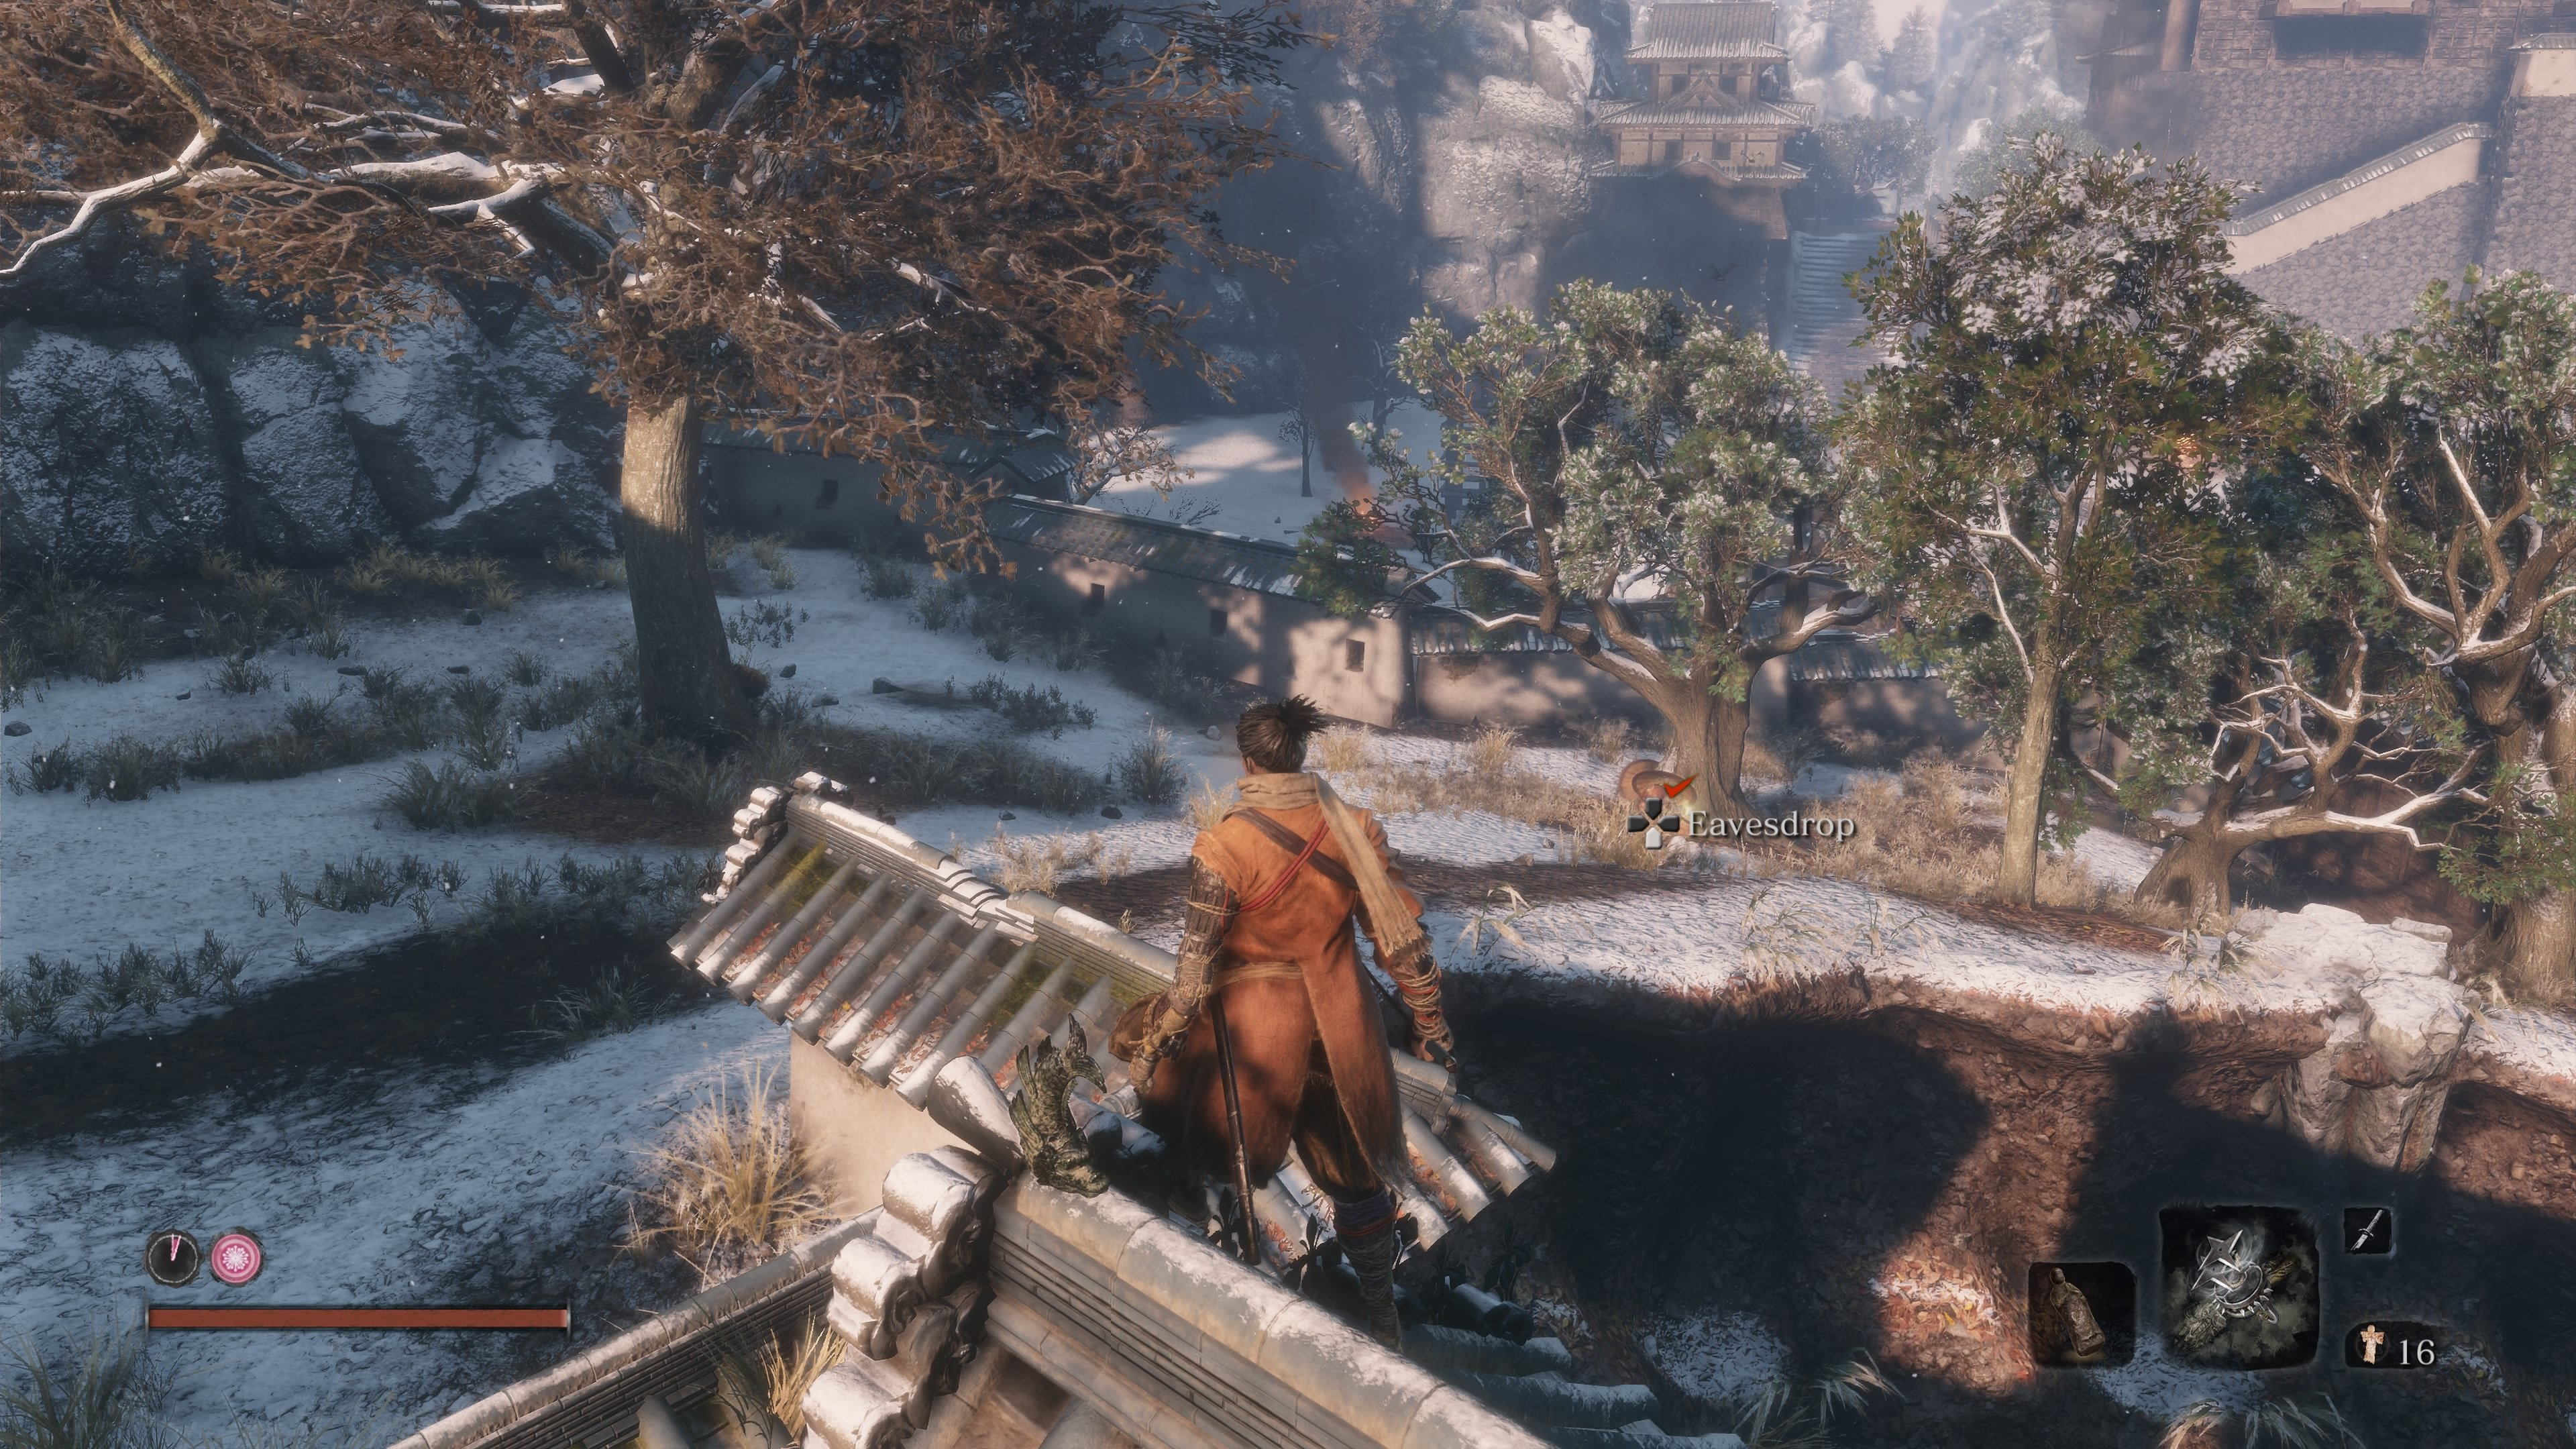 Assassin tengu rat location in Sekiro Shadows Die Twice